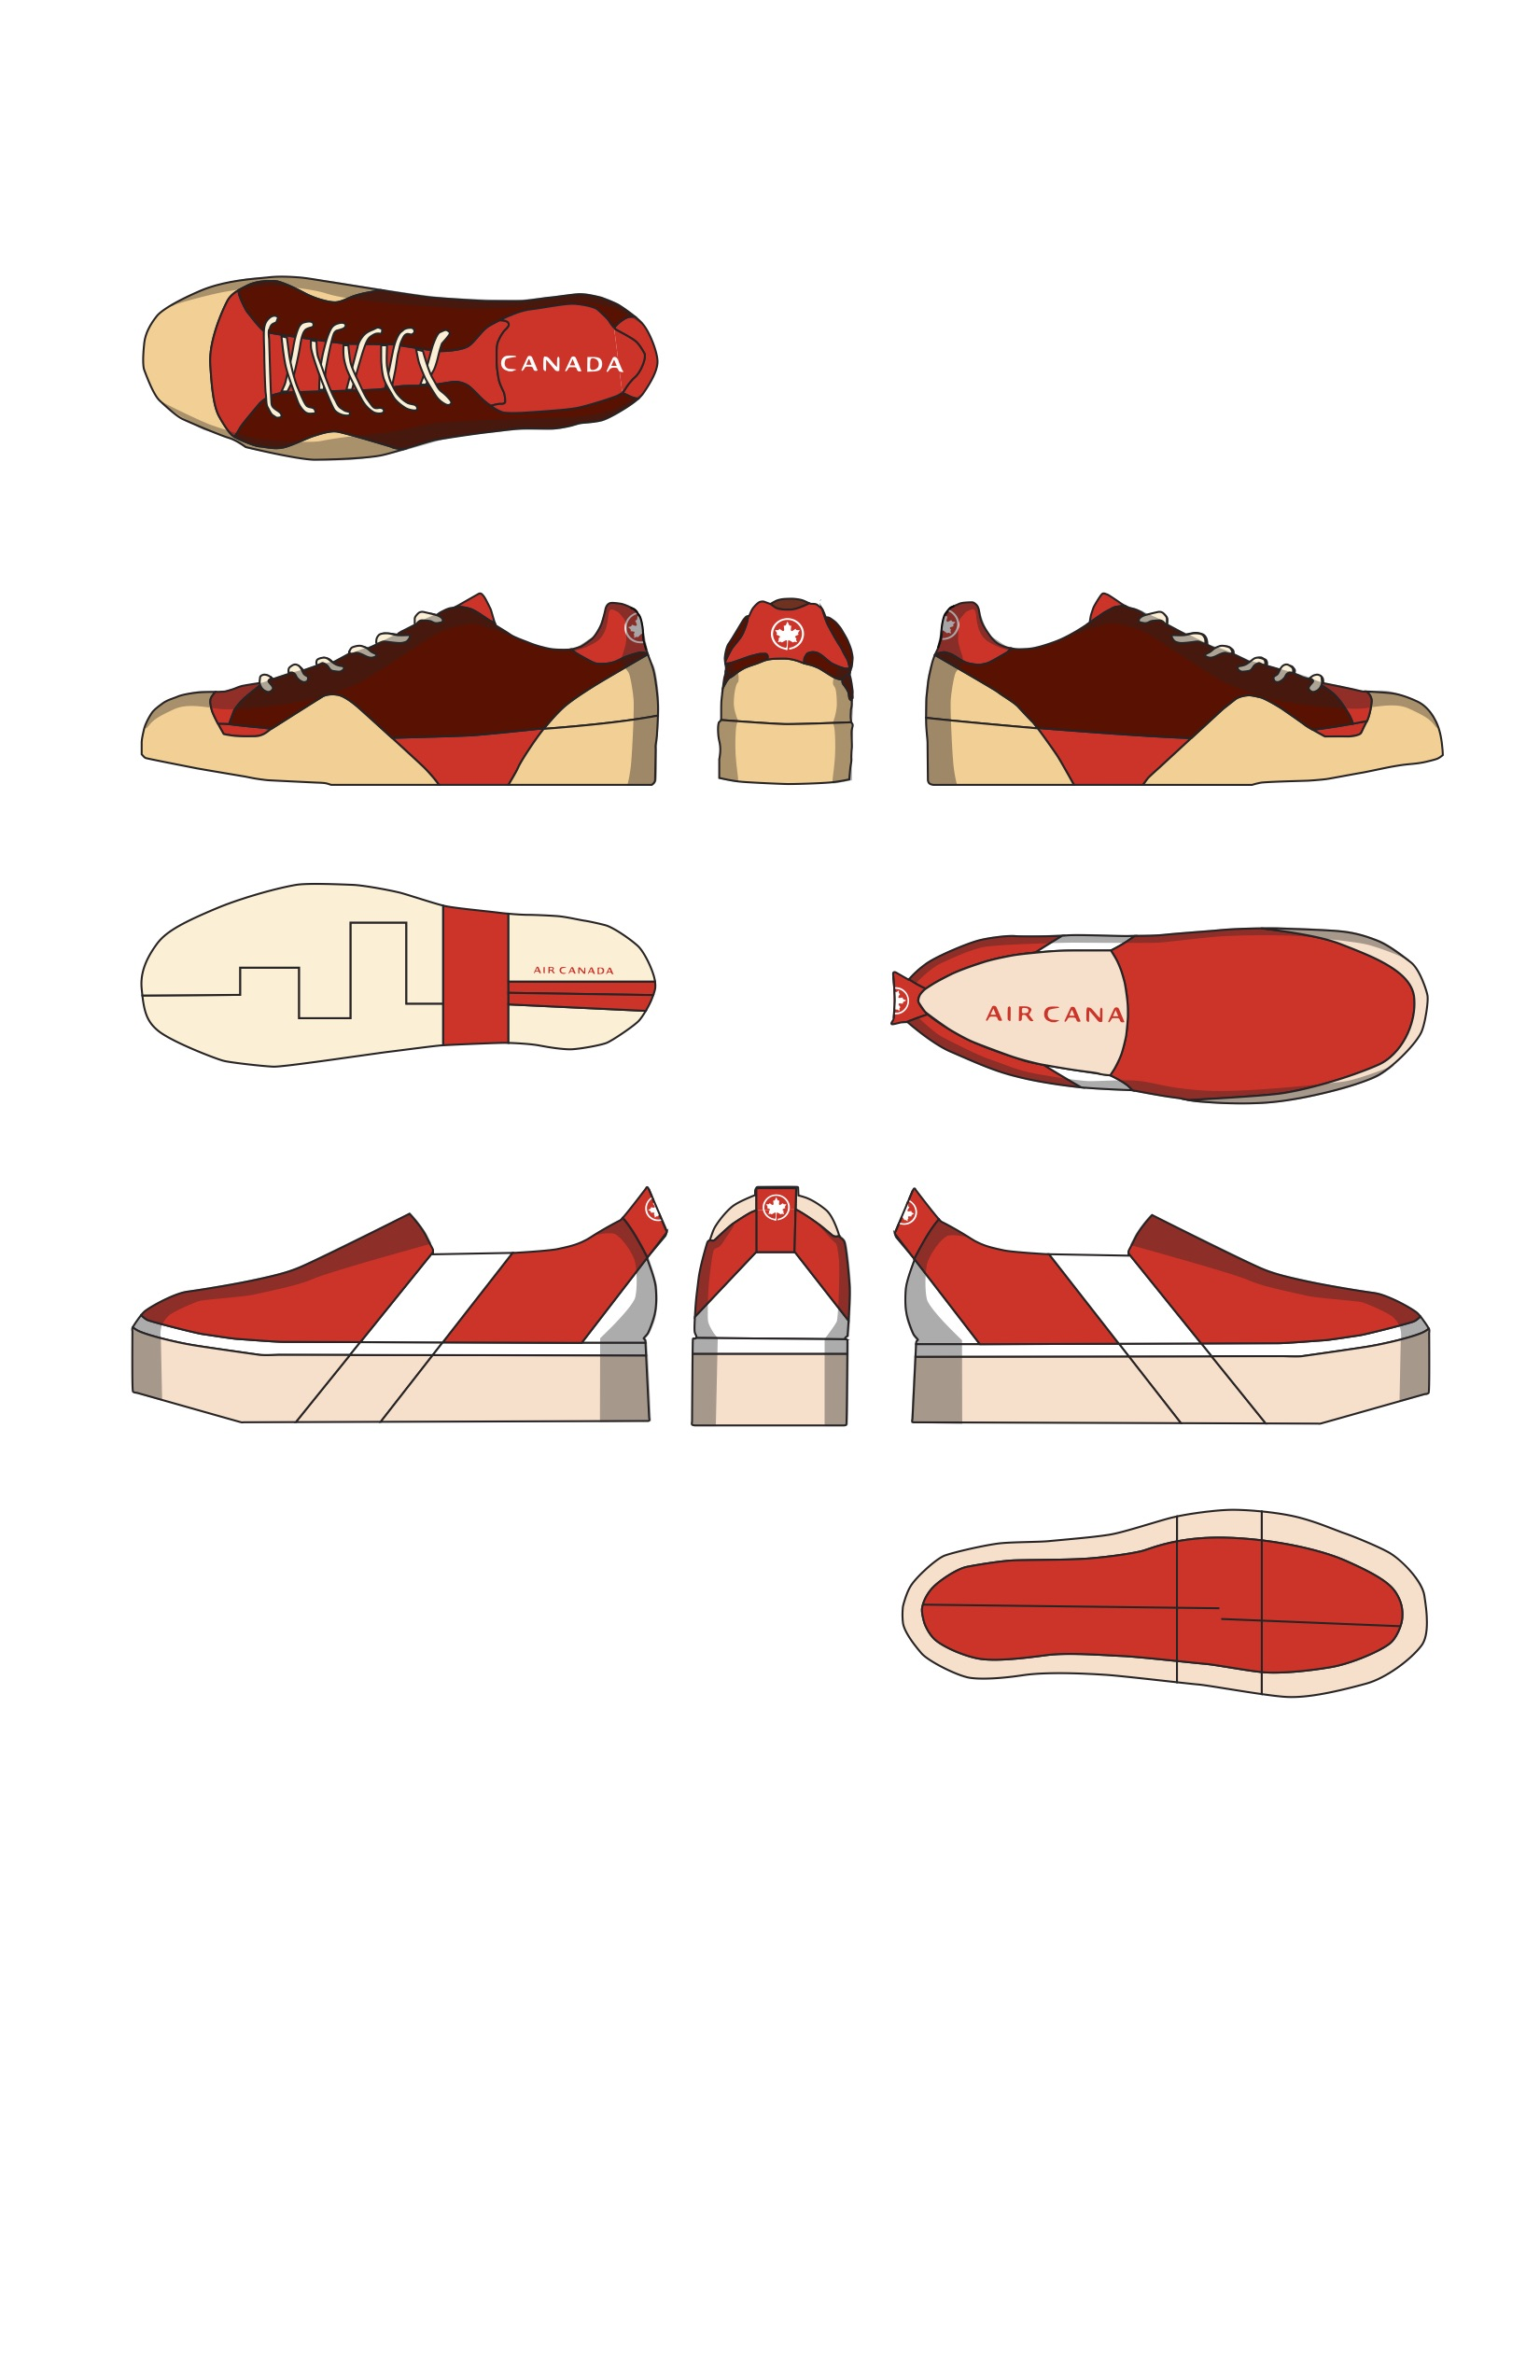 Flight Shoe Canada copy.jpg